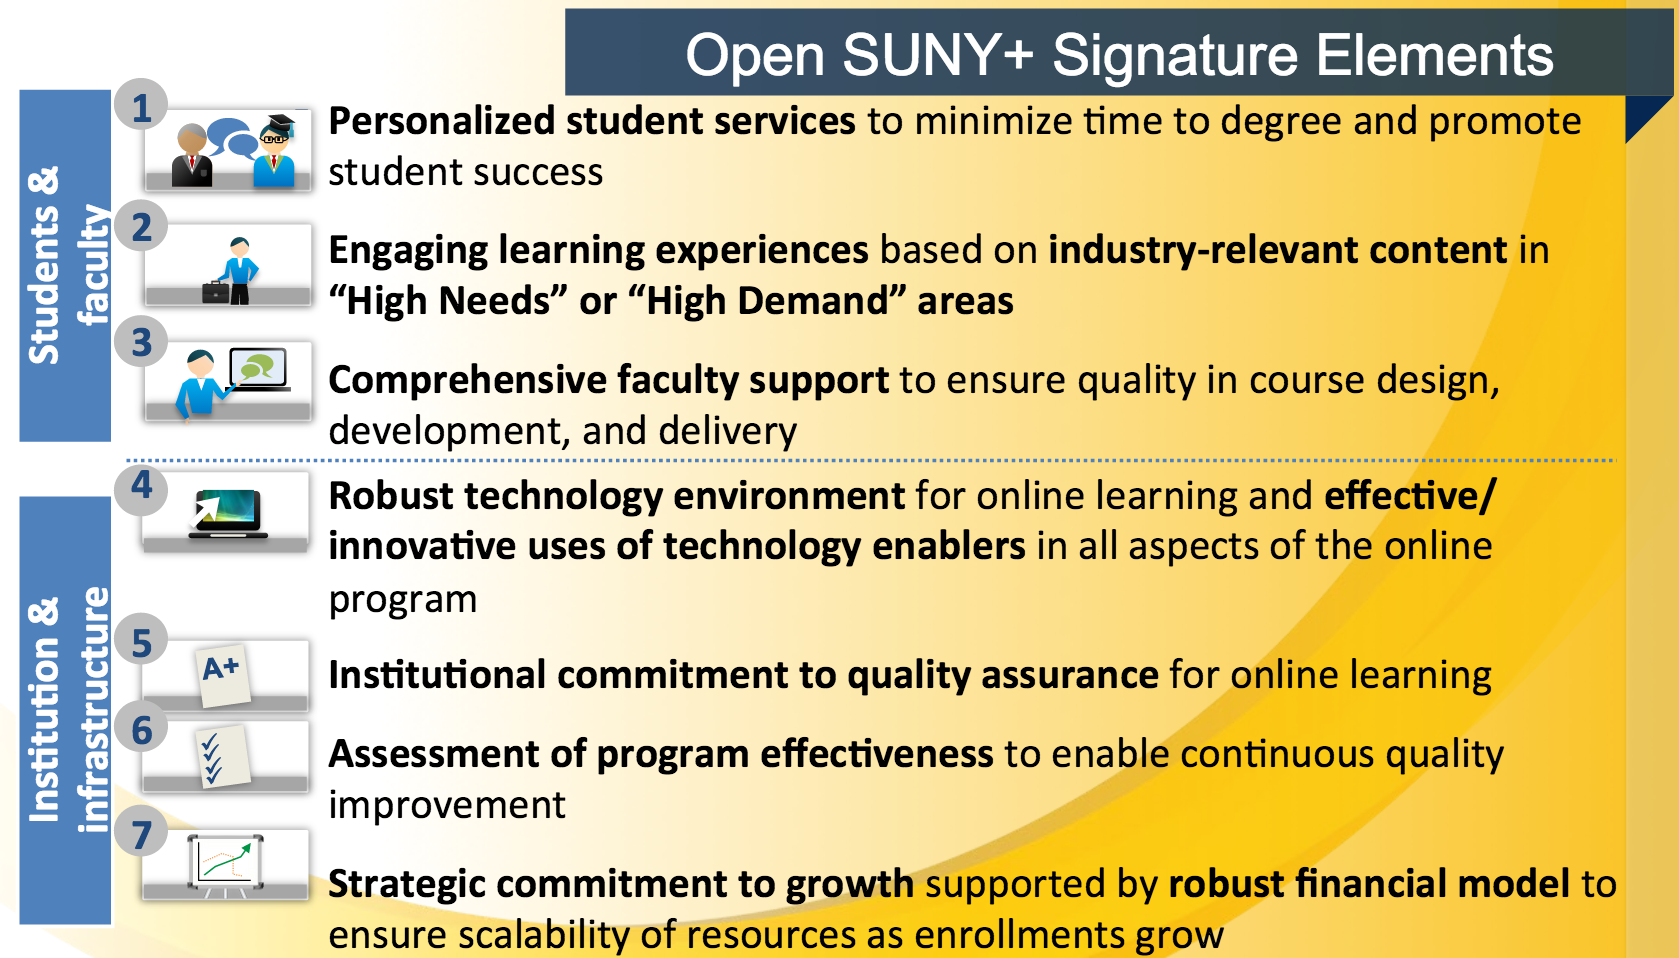 OpenSUNY+ Signature Elements